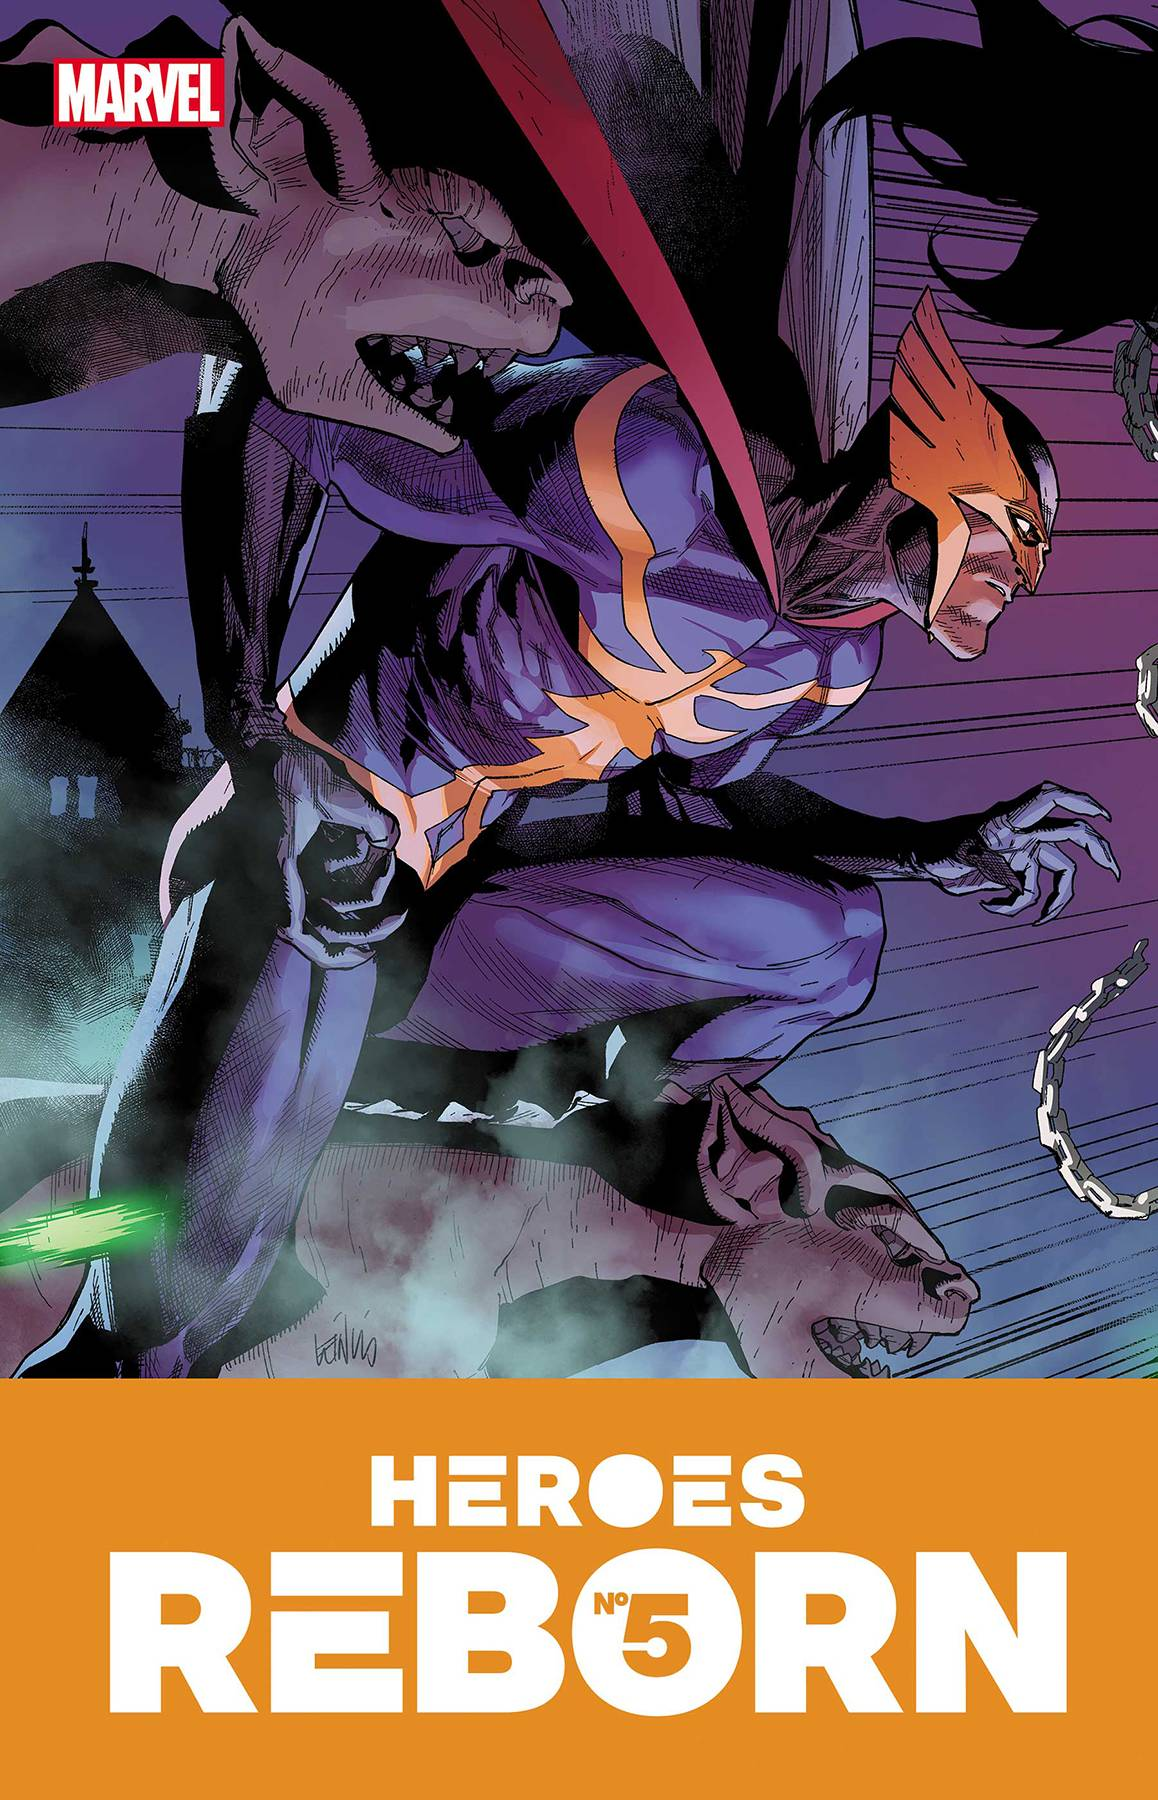 Heroes Reborn #5 (of 7) Cover A